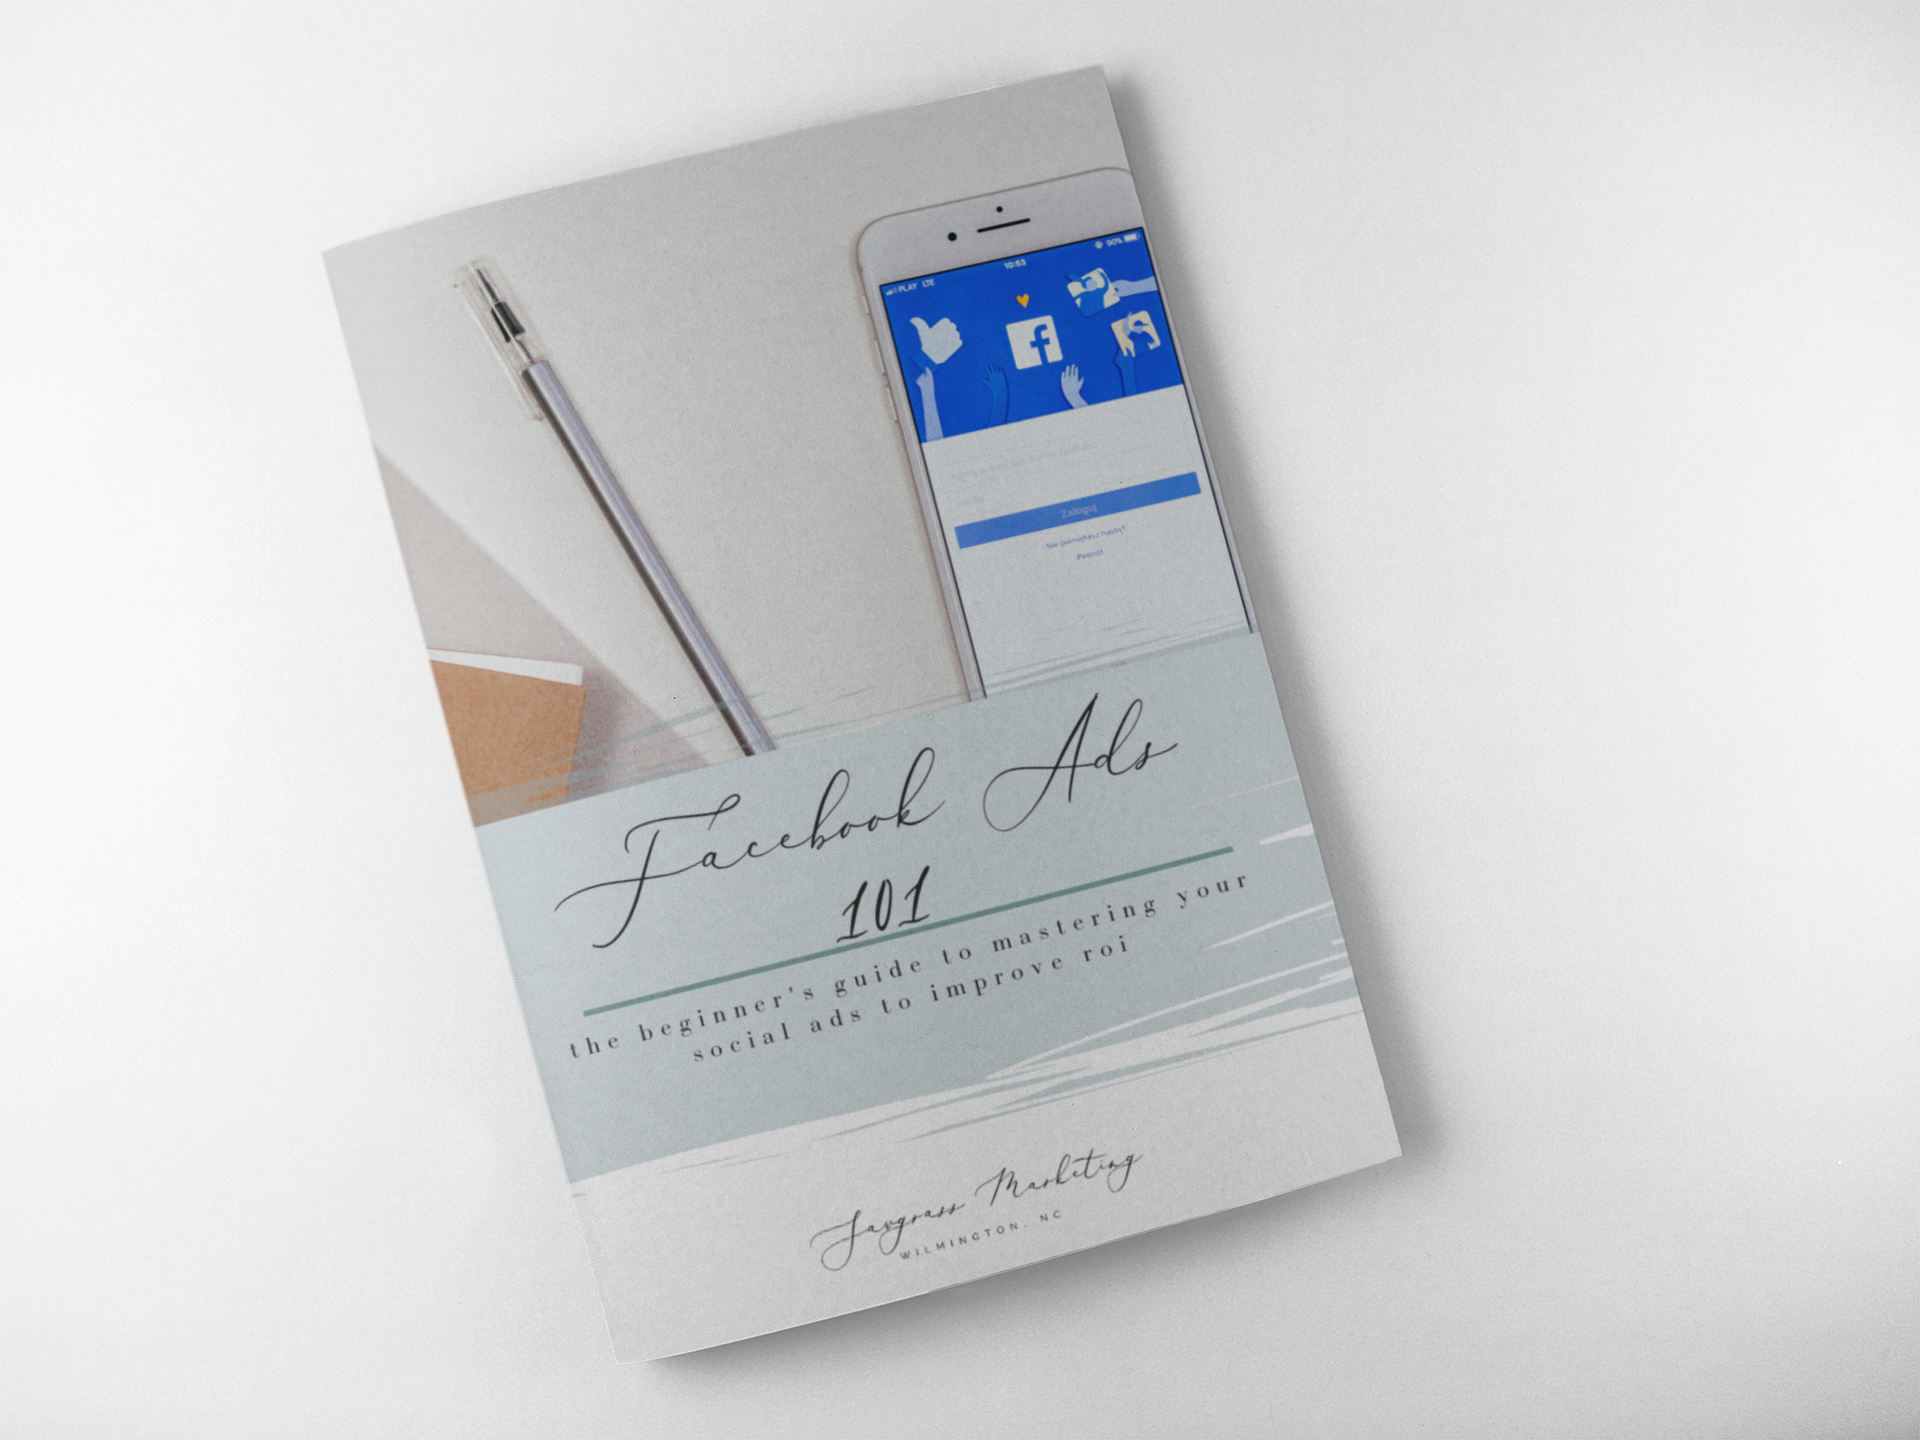 Facebook Advertising 101 Booklet Cover